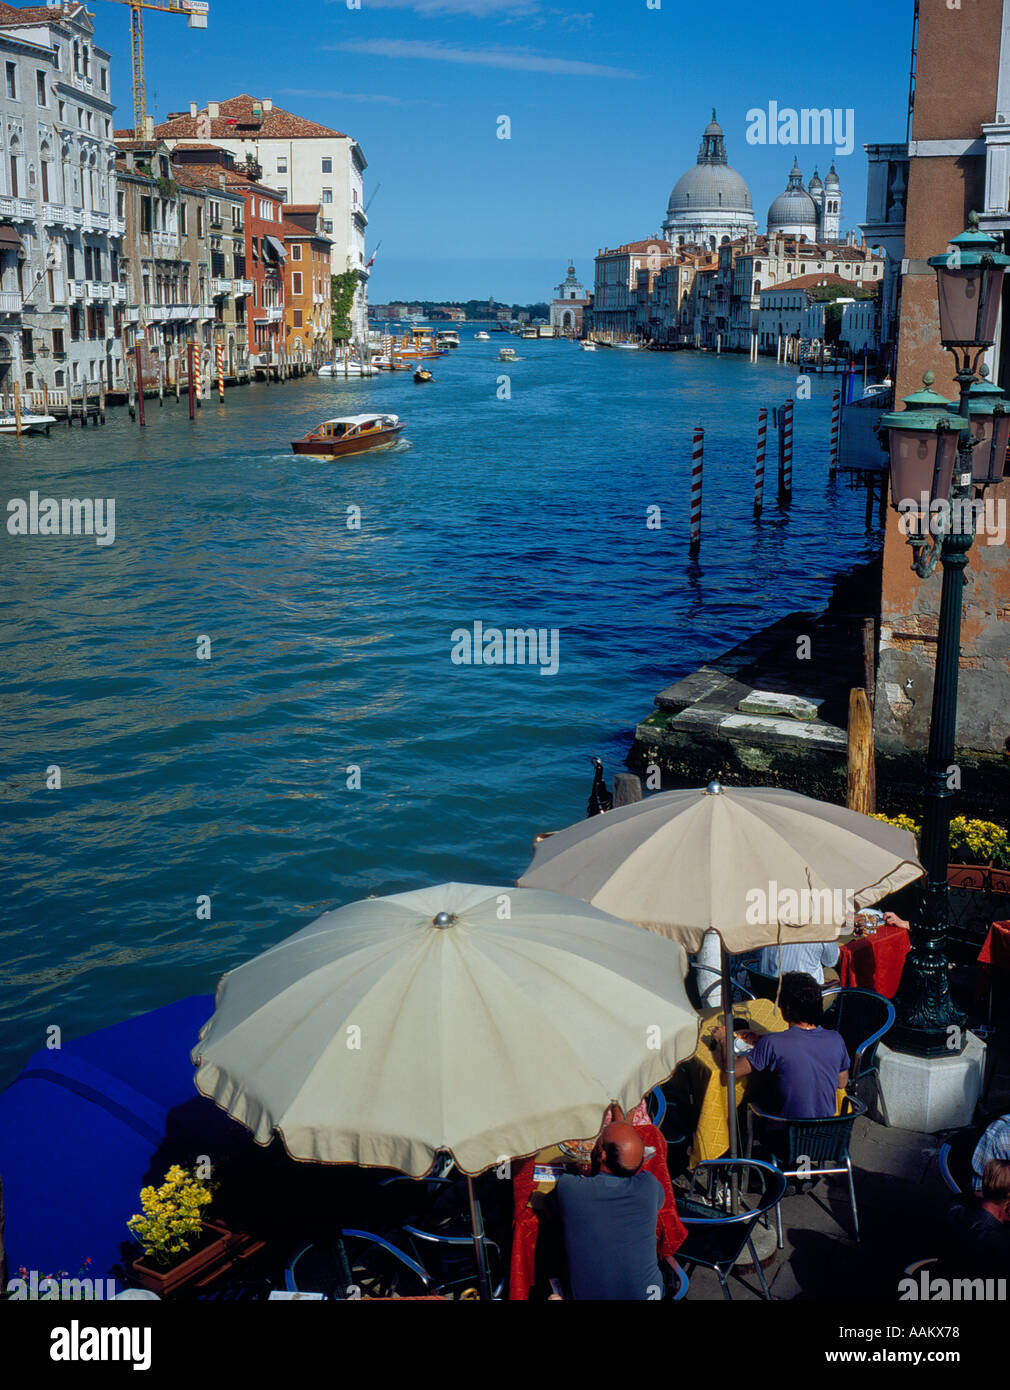 view from bridge at Accademia on Canal Grande, Venice, UNESCO World Heritage Site,  Italy, Europe. Photo by Willy - Stock Image